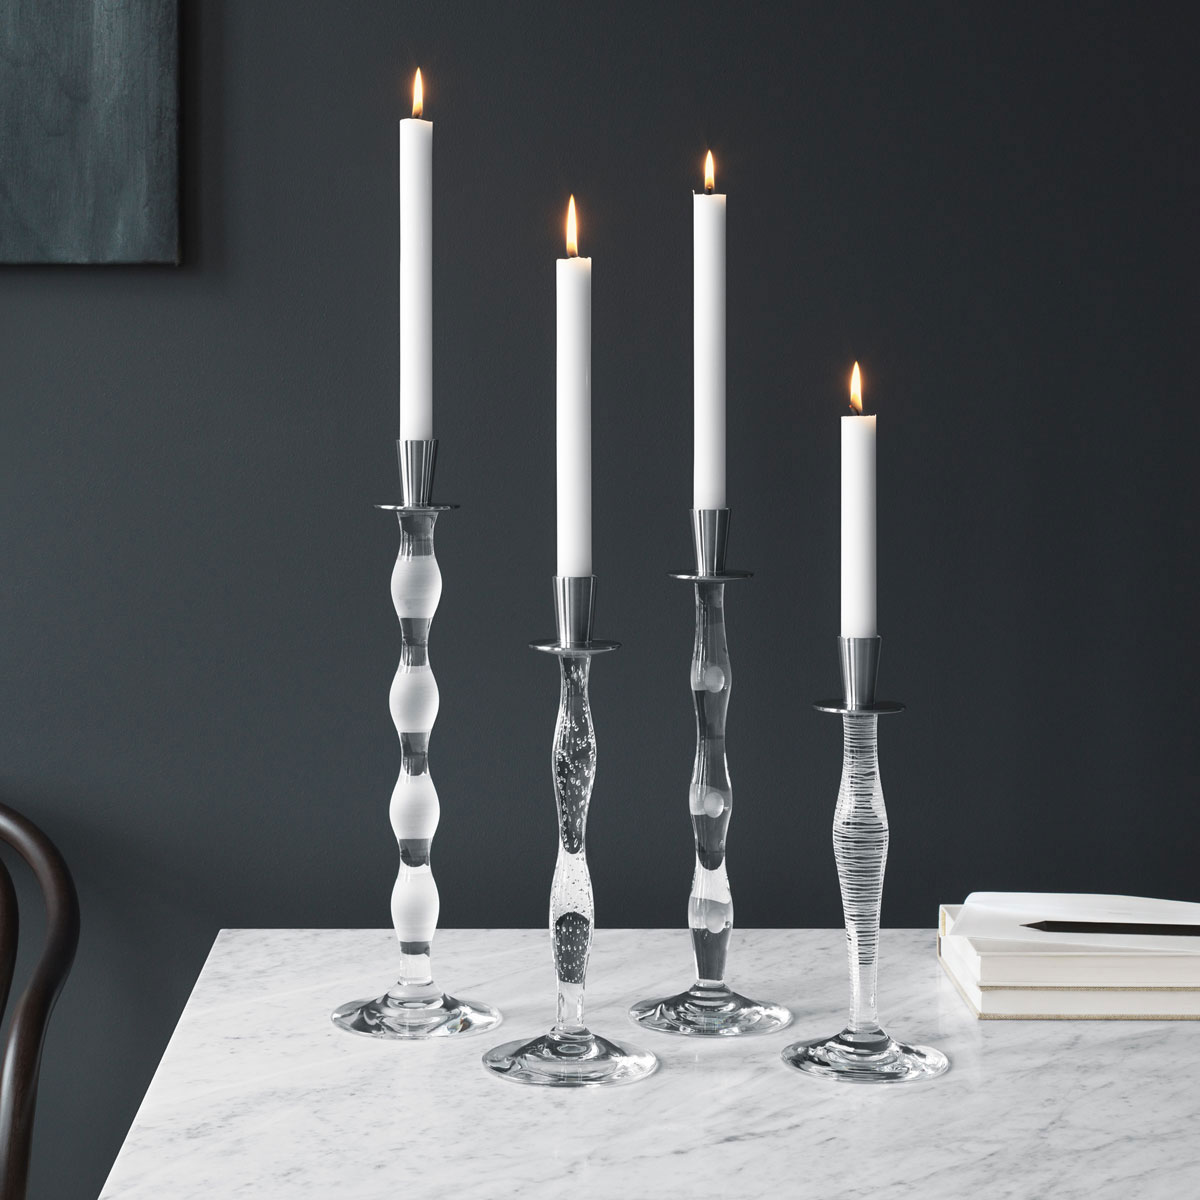 Orrefors Celeste Cut Candlestick, Single